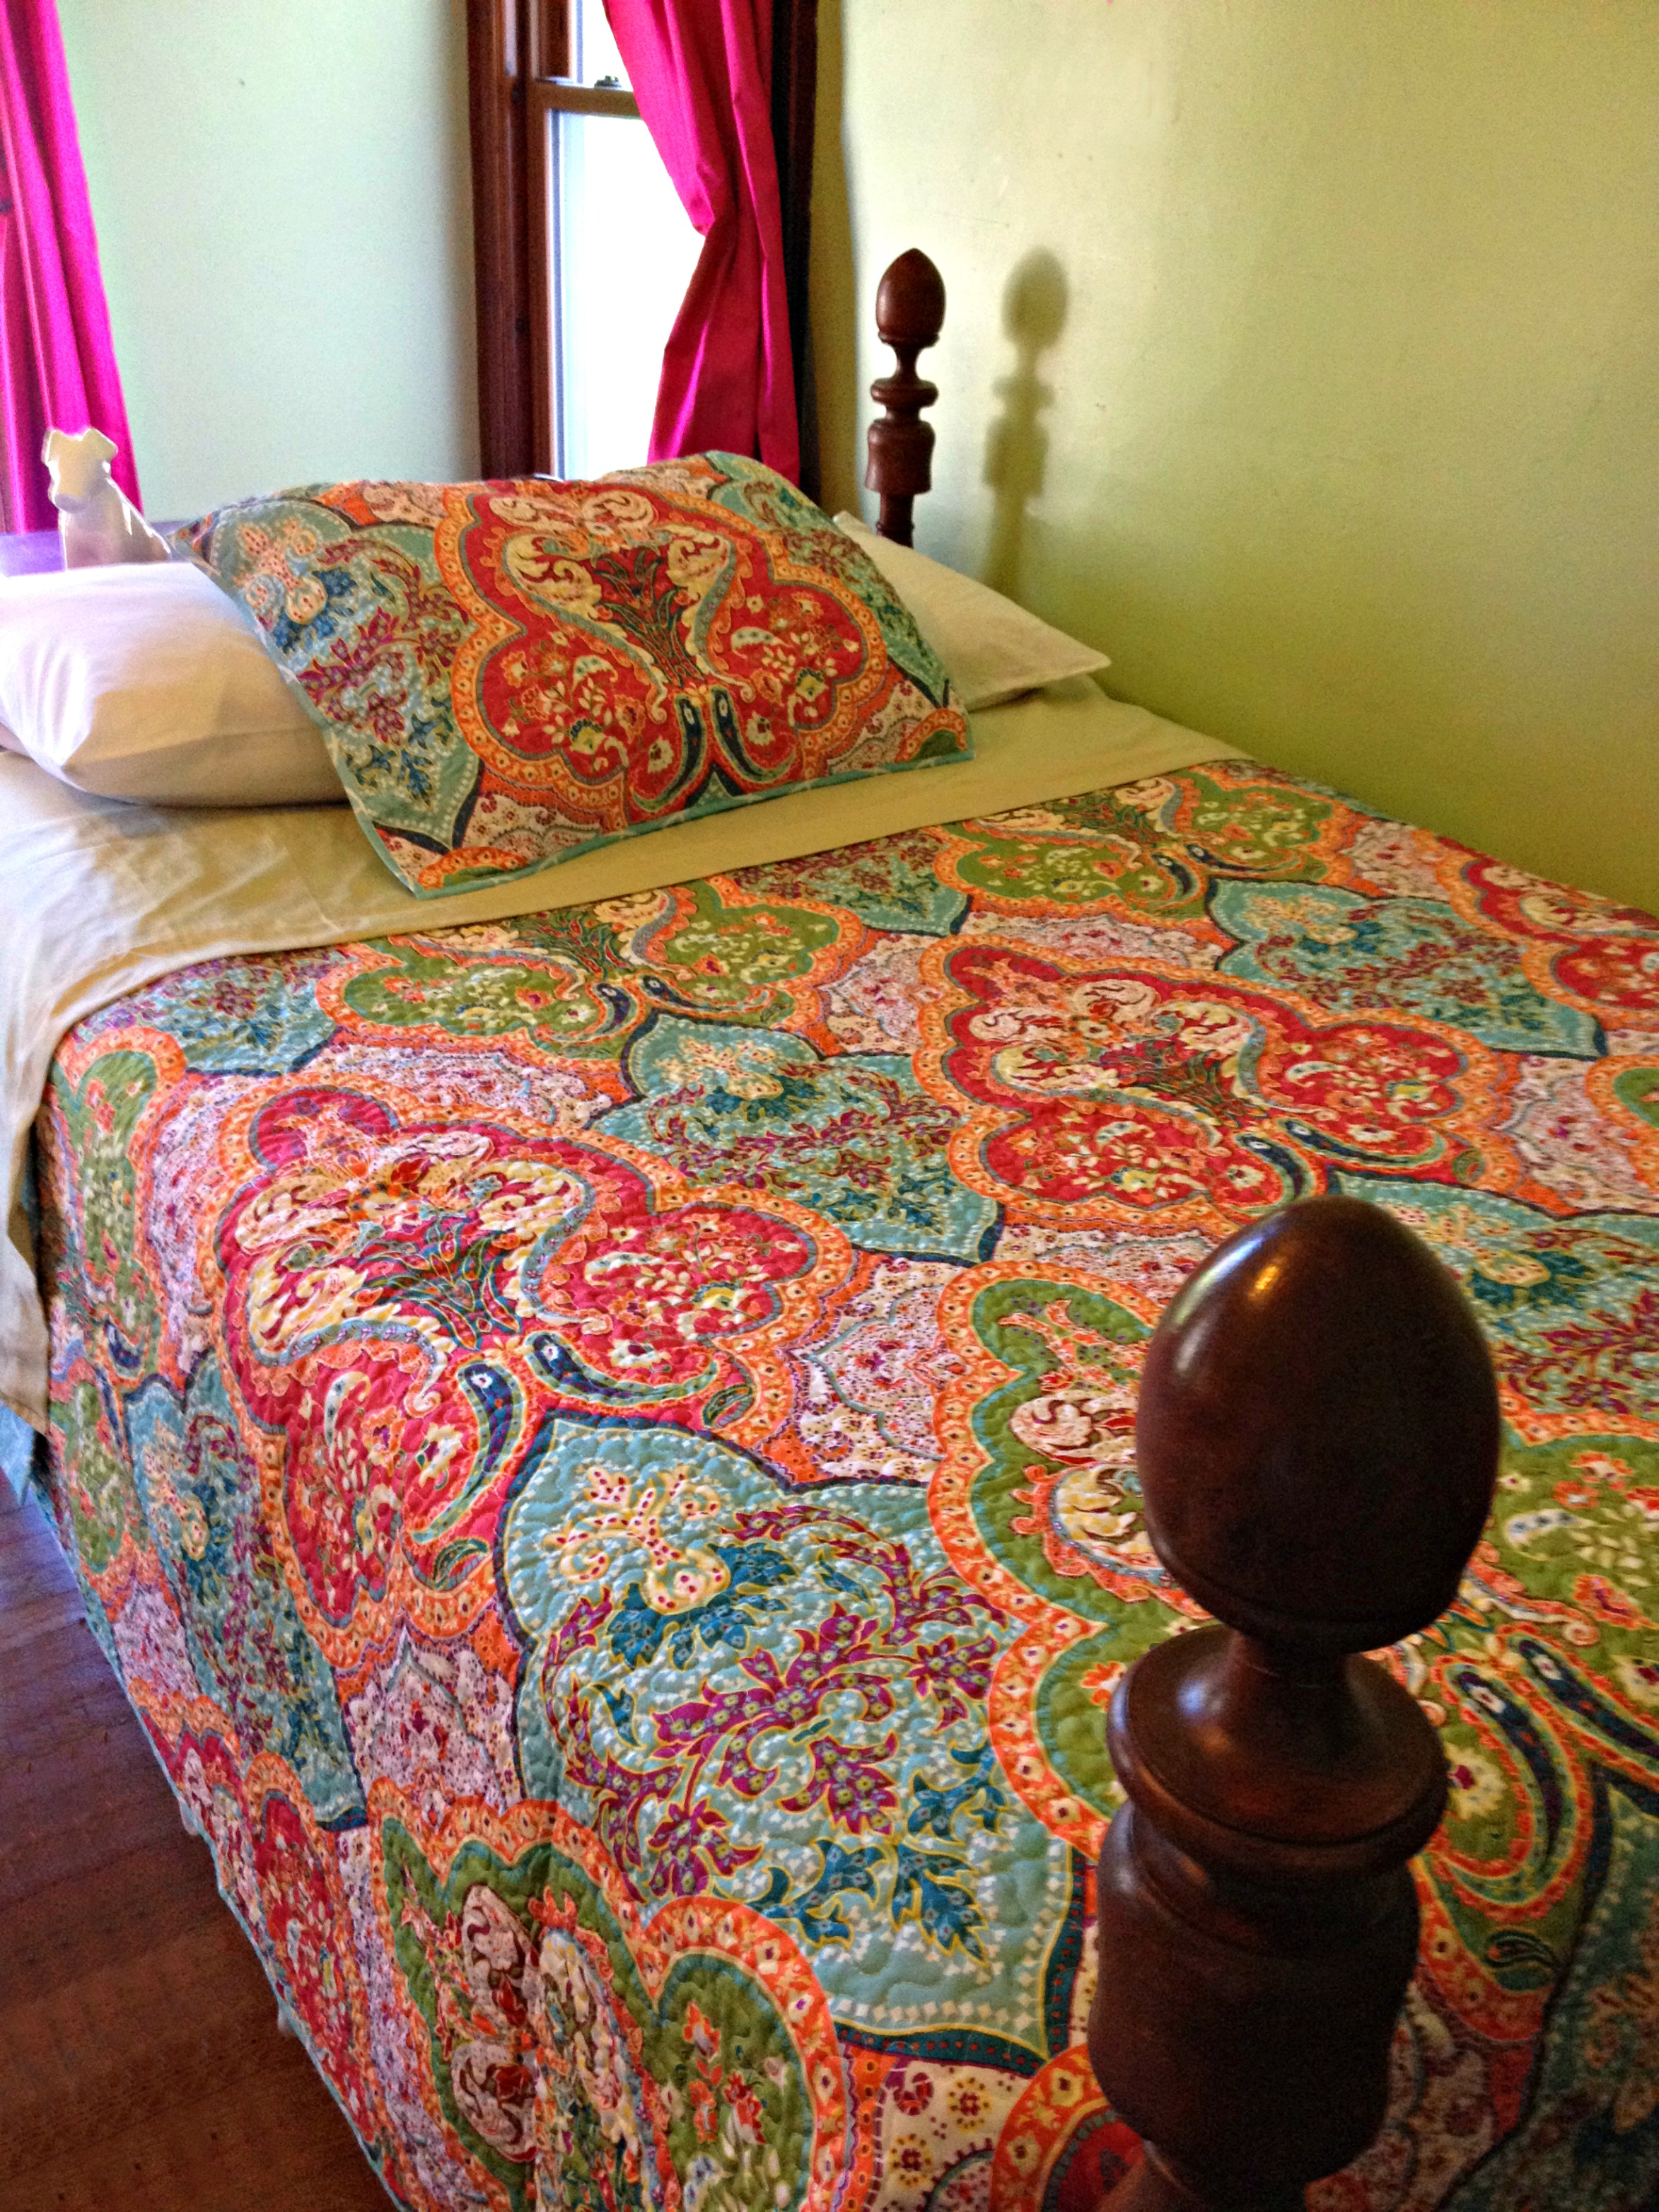 better homes and garden comforter 2 - Google Better Homes And Gardens